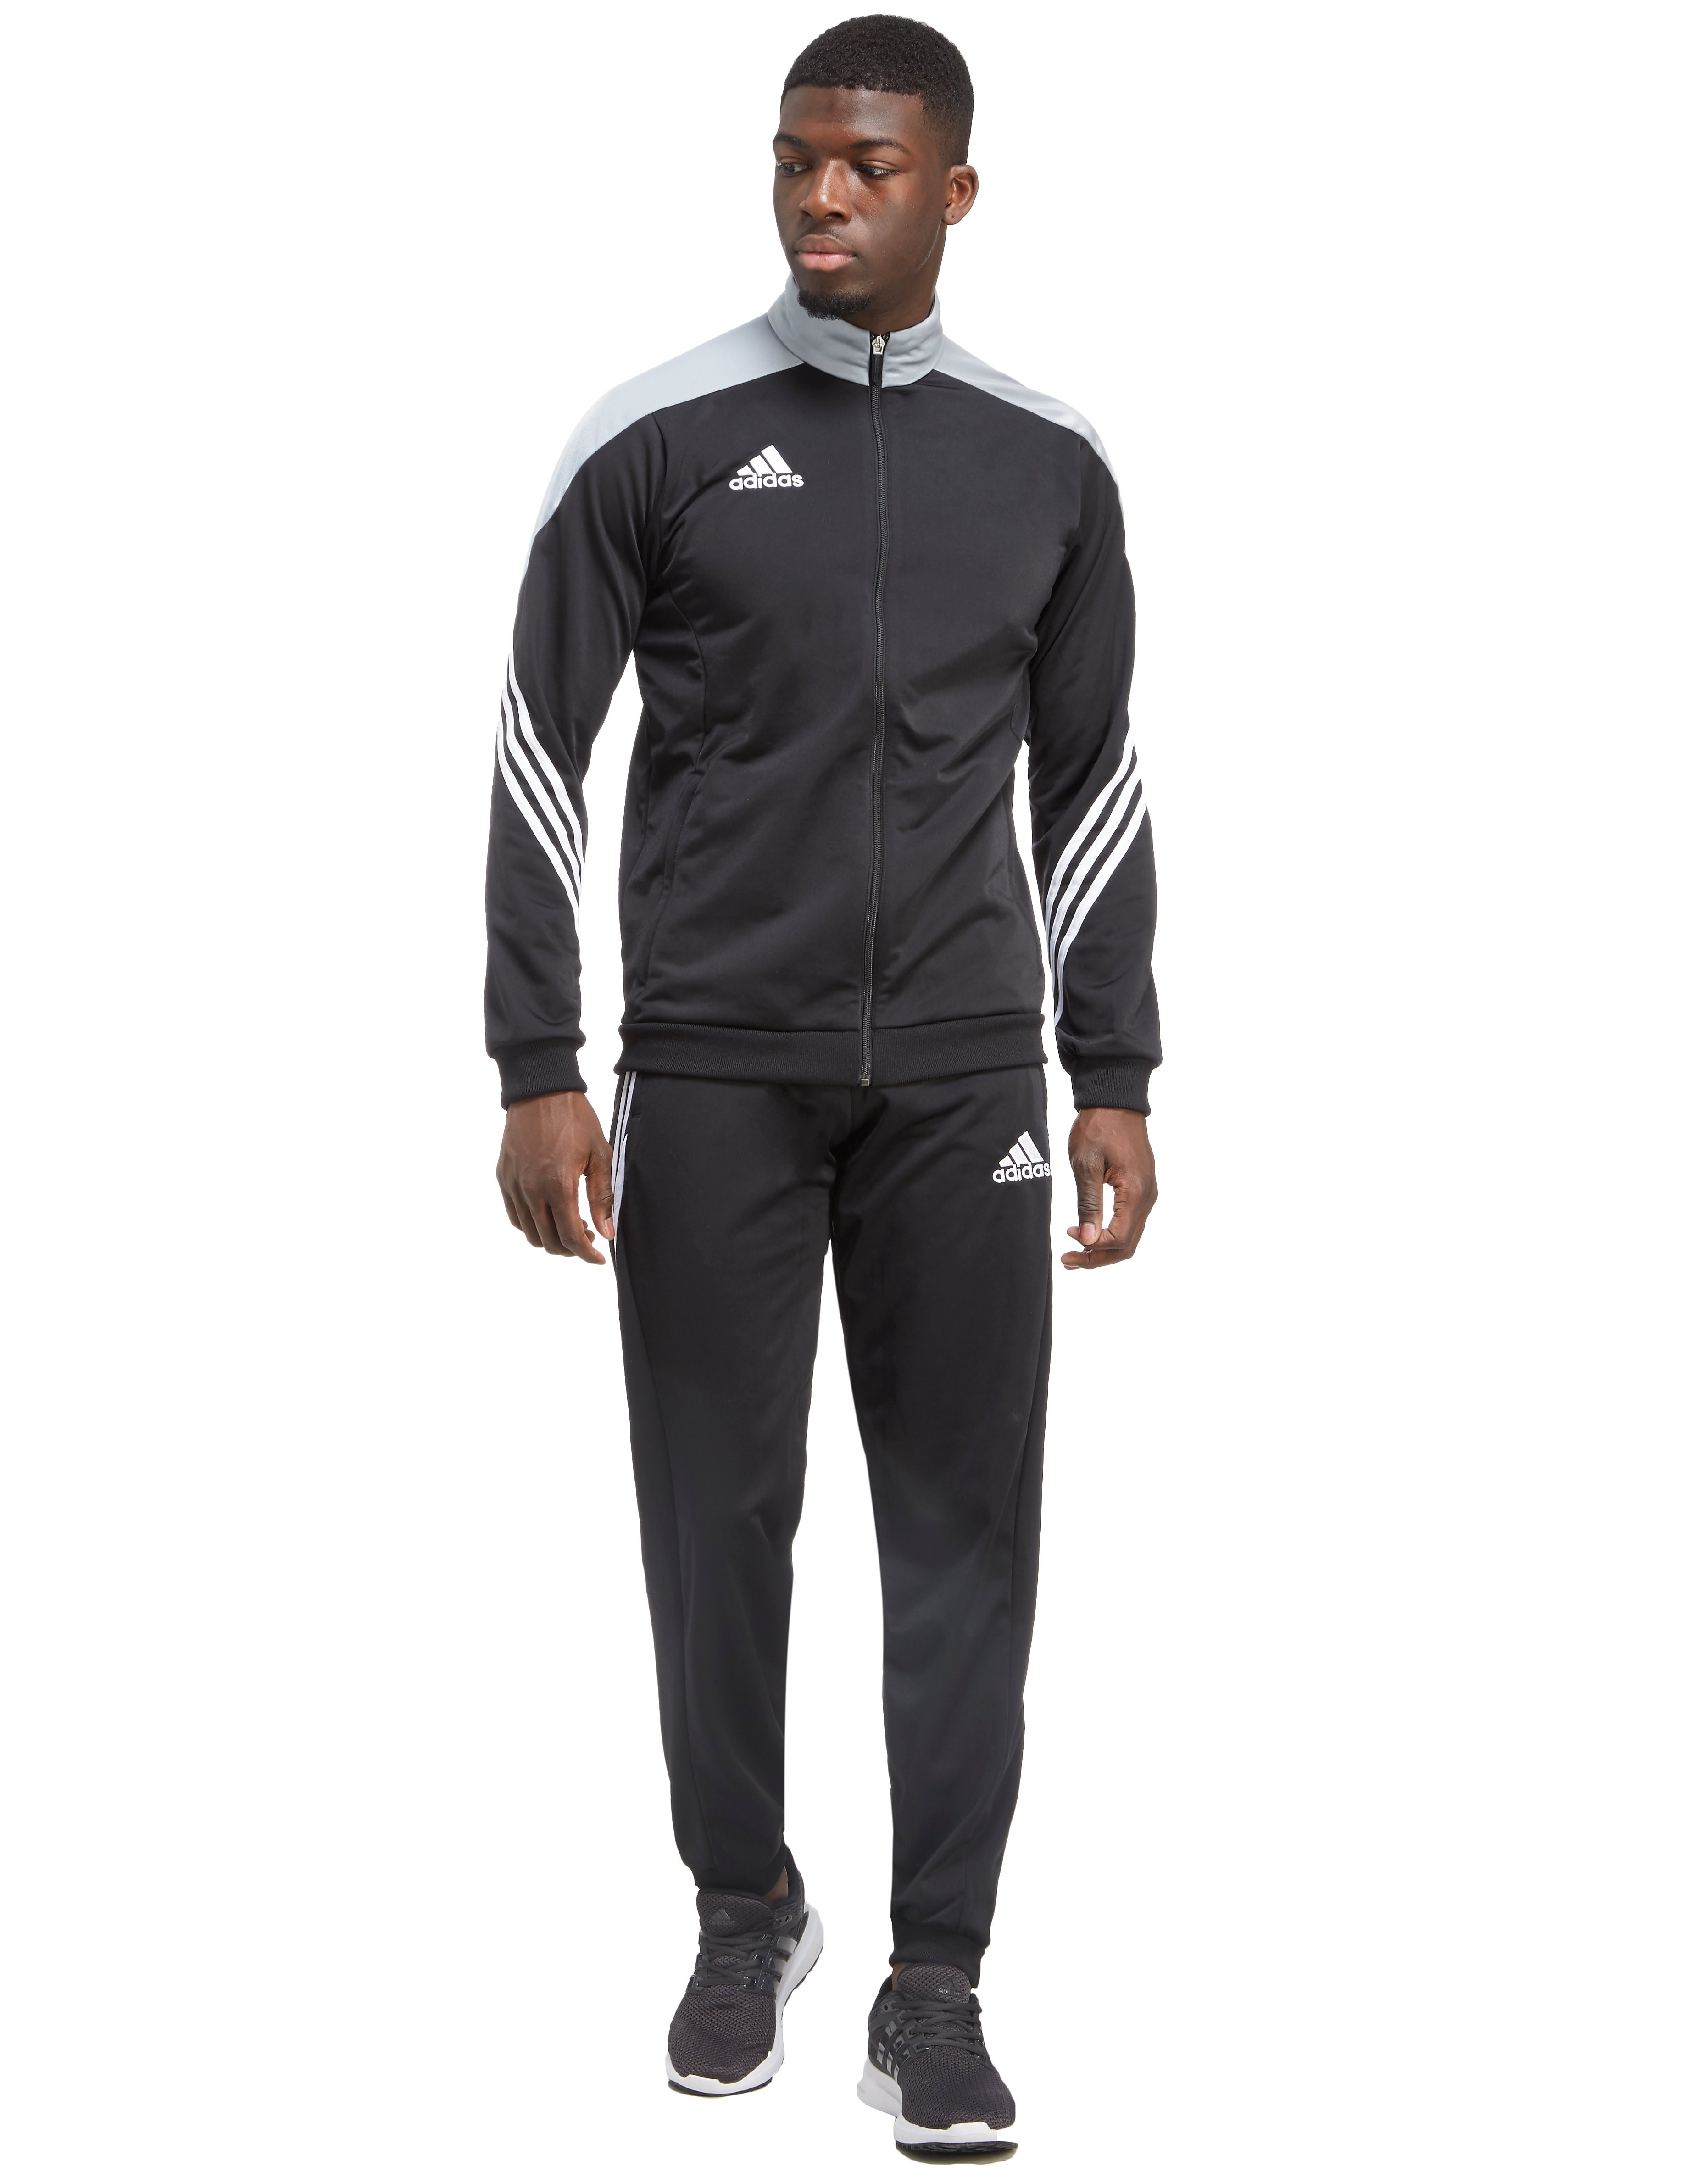 Discover our range of men's tracksuits at ASOS. Shop a selection of tracksuits including tops, bottoms and sets, in a variety of styles at ASOS.